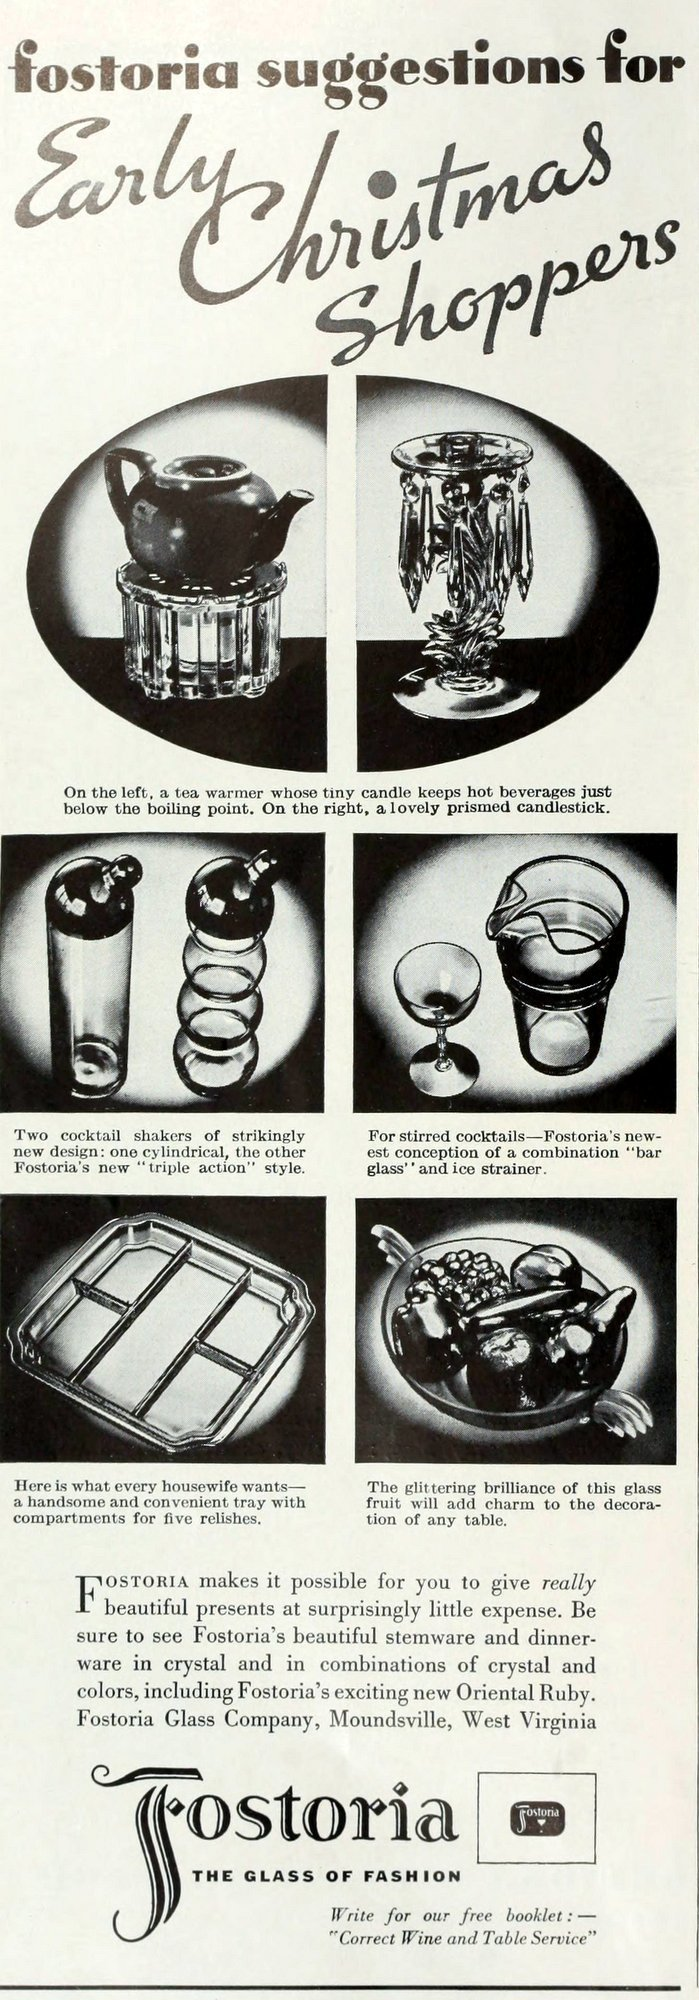 Antique Fostoria glass for gifts - 1934 (1)